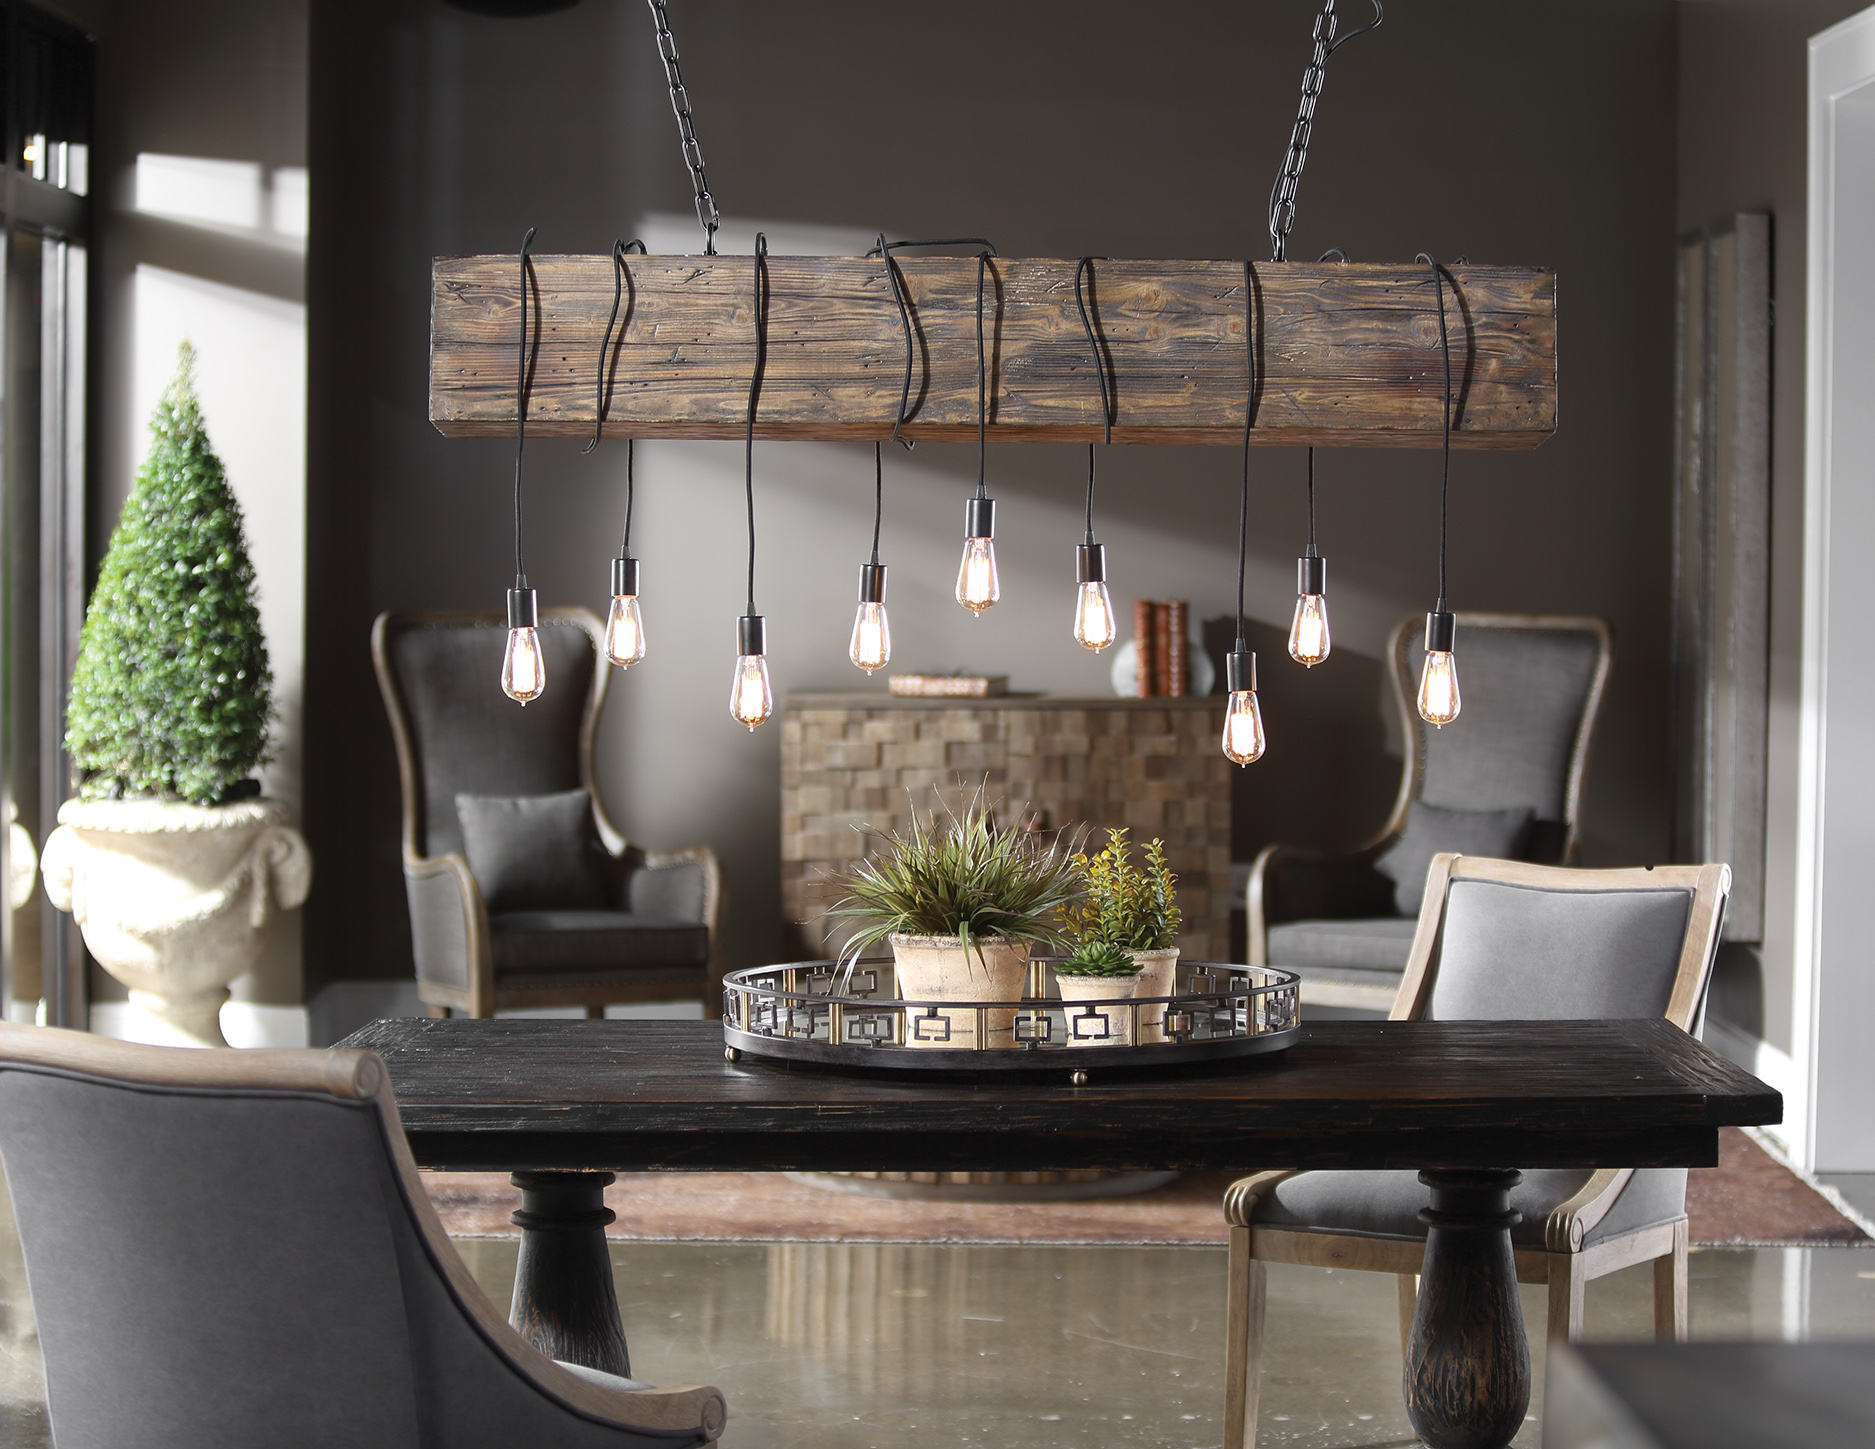 Roughed And Distressed, The Railroad Pendant Emulates A Little History In  The Otherwise Modern Design Style. Espresso Stained Worn Wood, Heavy Chains  And ...